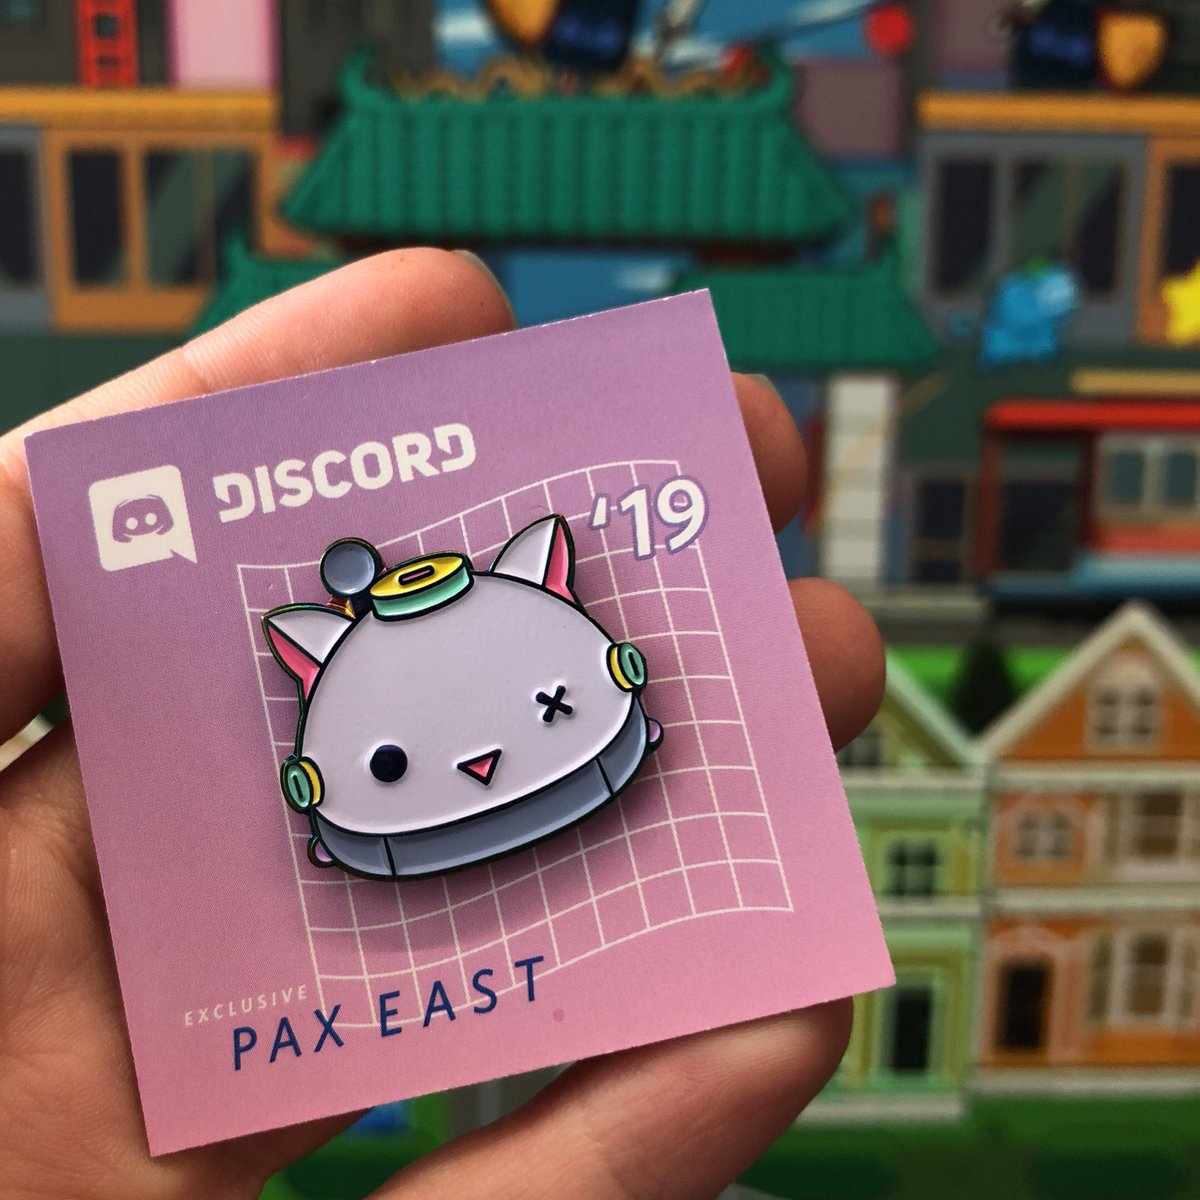 Wumpus's friend Nelly is making her first ever merch appearance at PAX. please be kind and show her some love.